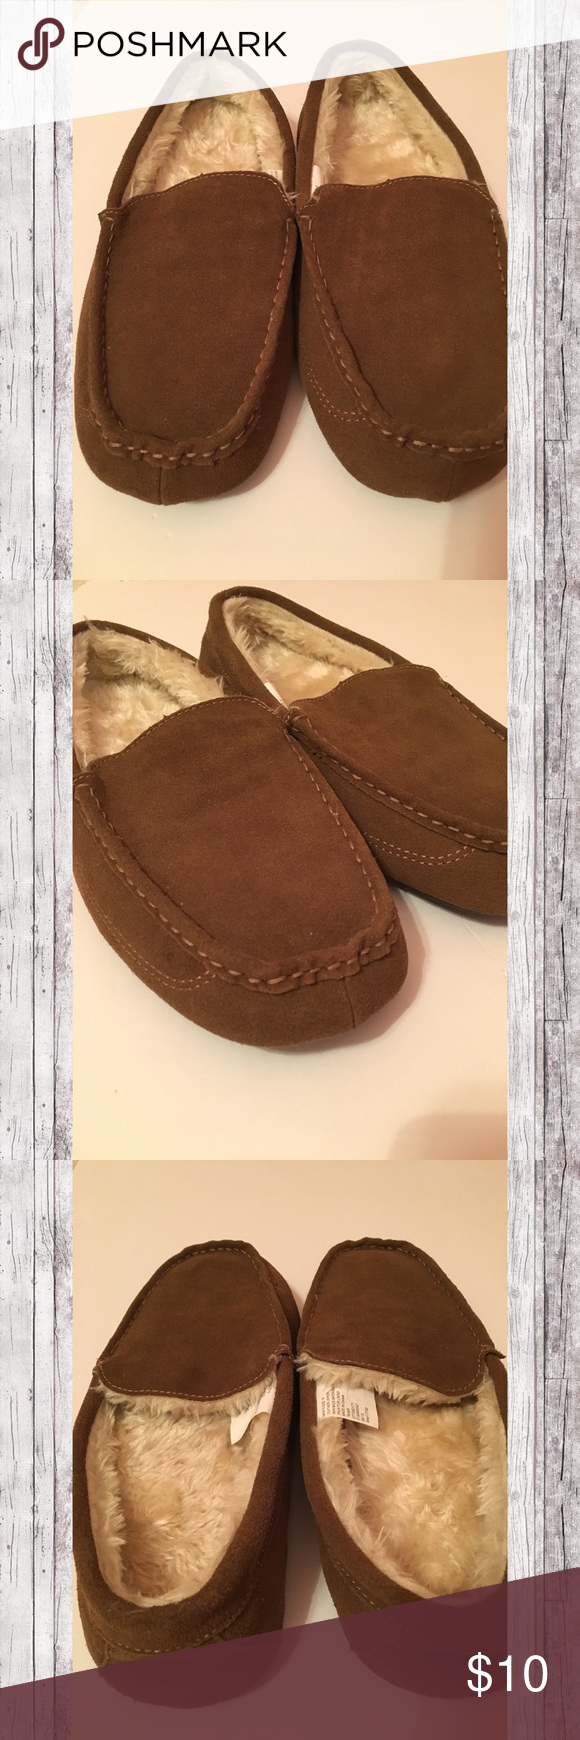 e2ed0a26309d Target Men s Faux Fur Lined House Shoes Brown slippers with cream colored  fur from Target.